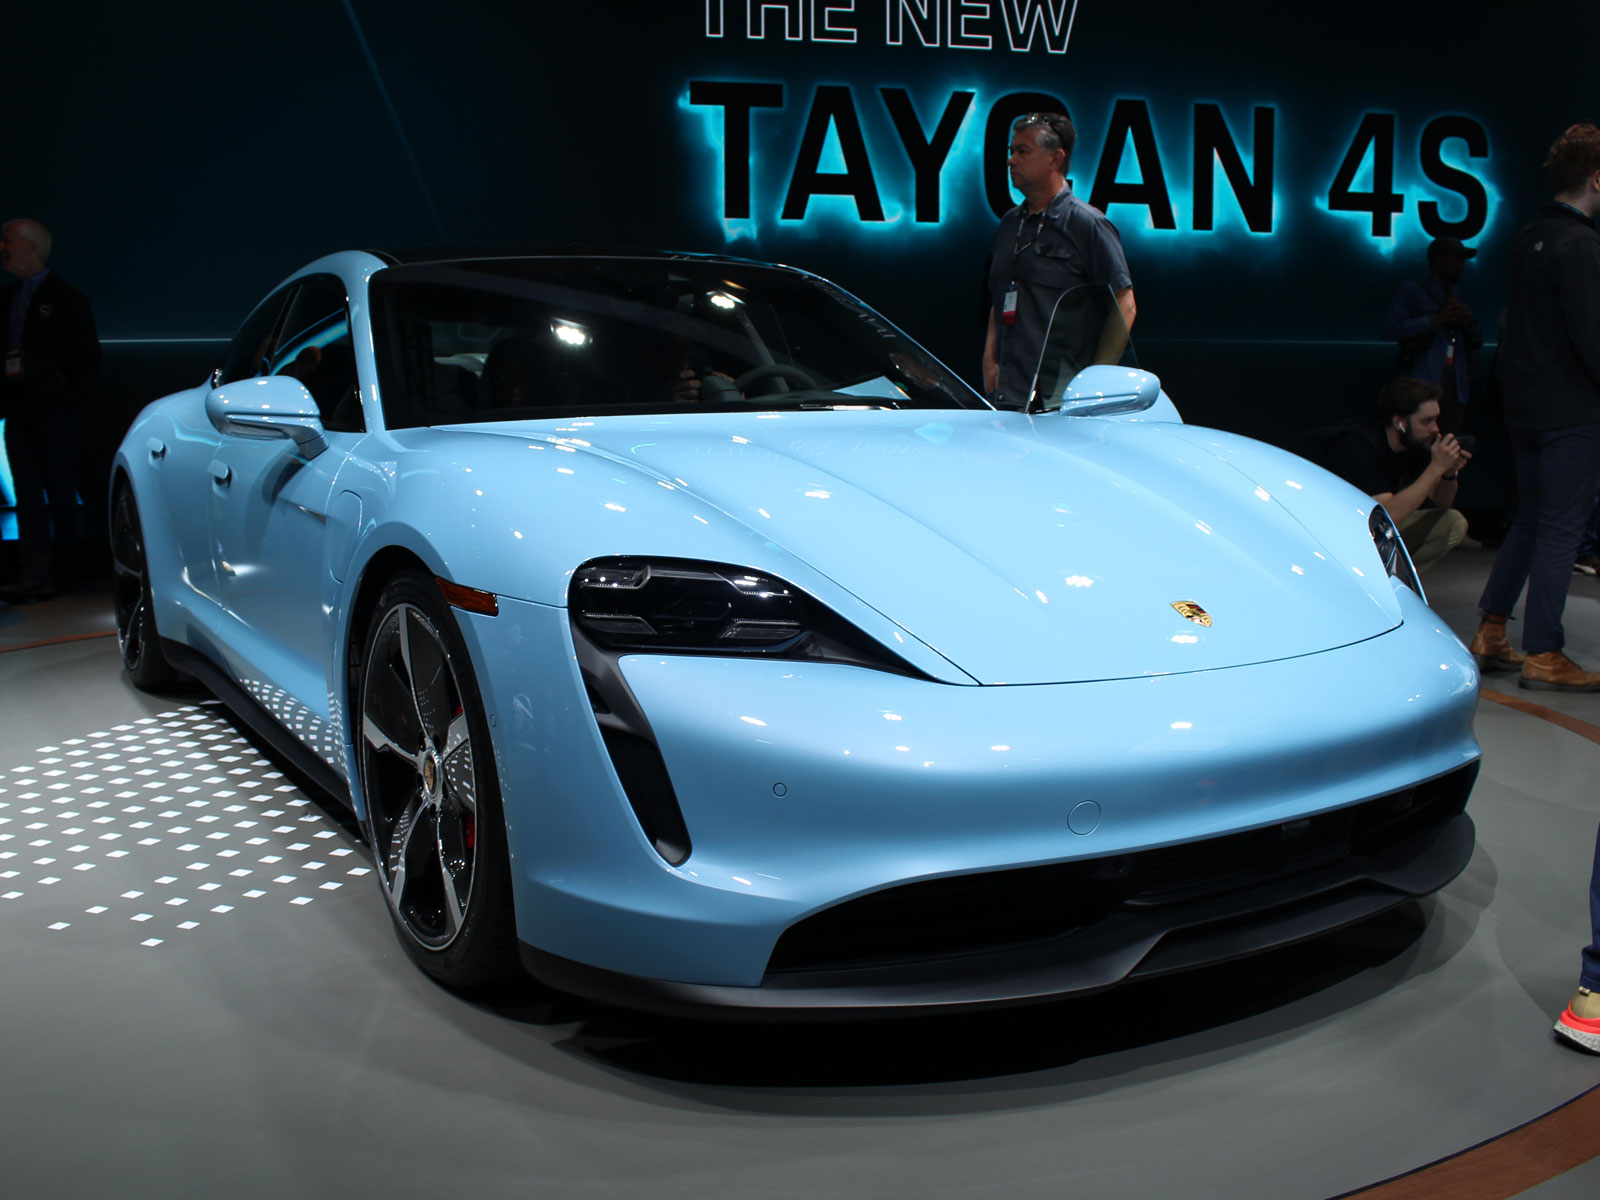 2020 Porsche Taycan 4s Unveiled In Los Angeles Motor Illustrated